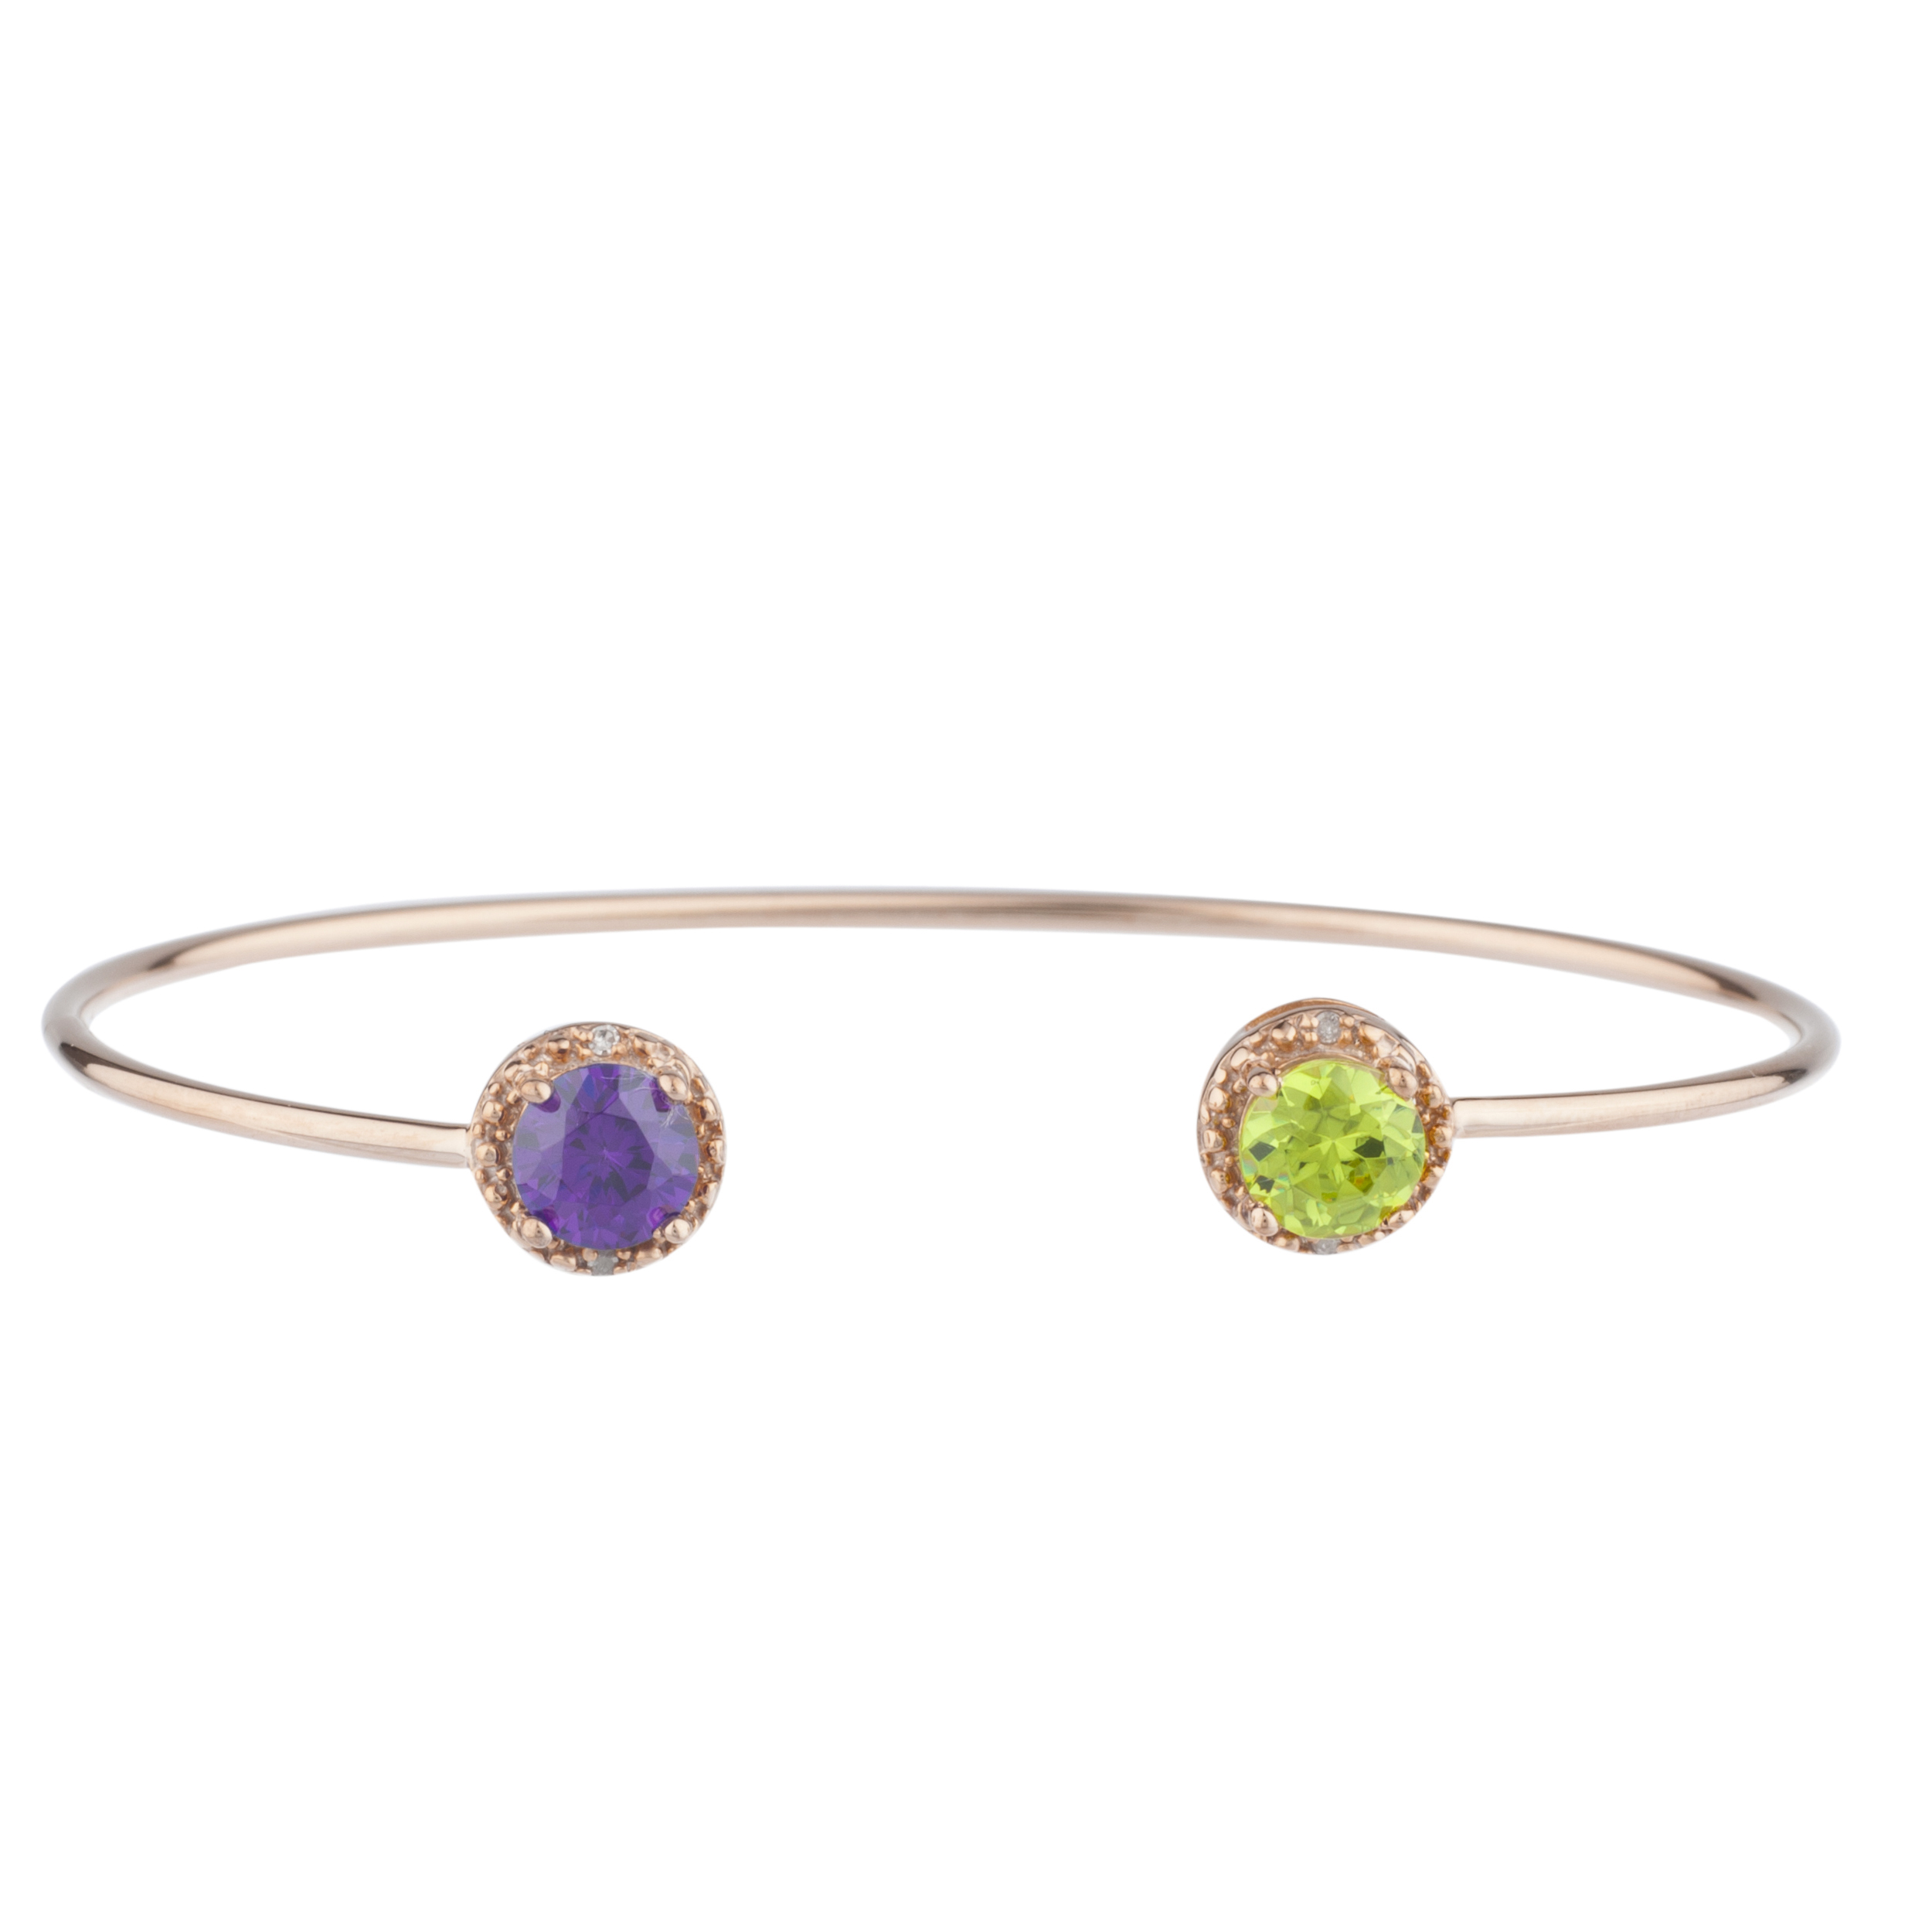 Amethyst & Peridot Diamond Bangle Round Bracelet 14Kt Rose Gold Plated Over .925 Sterling Silver by Elizabeth Jewelry Inc